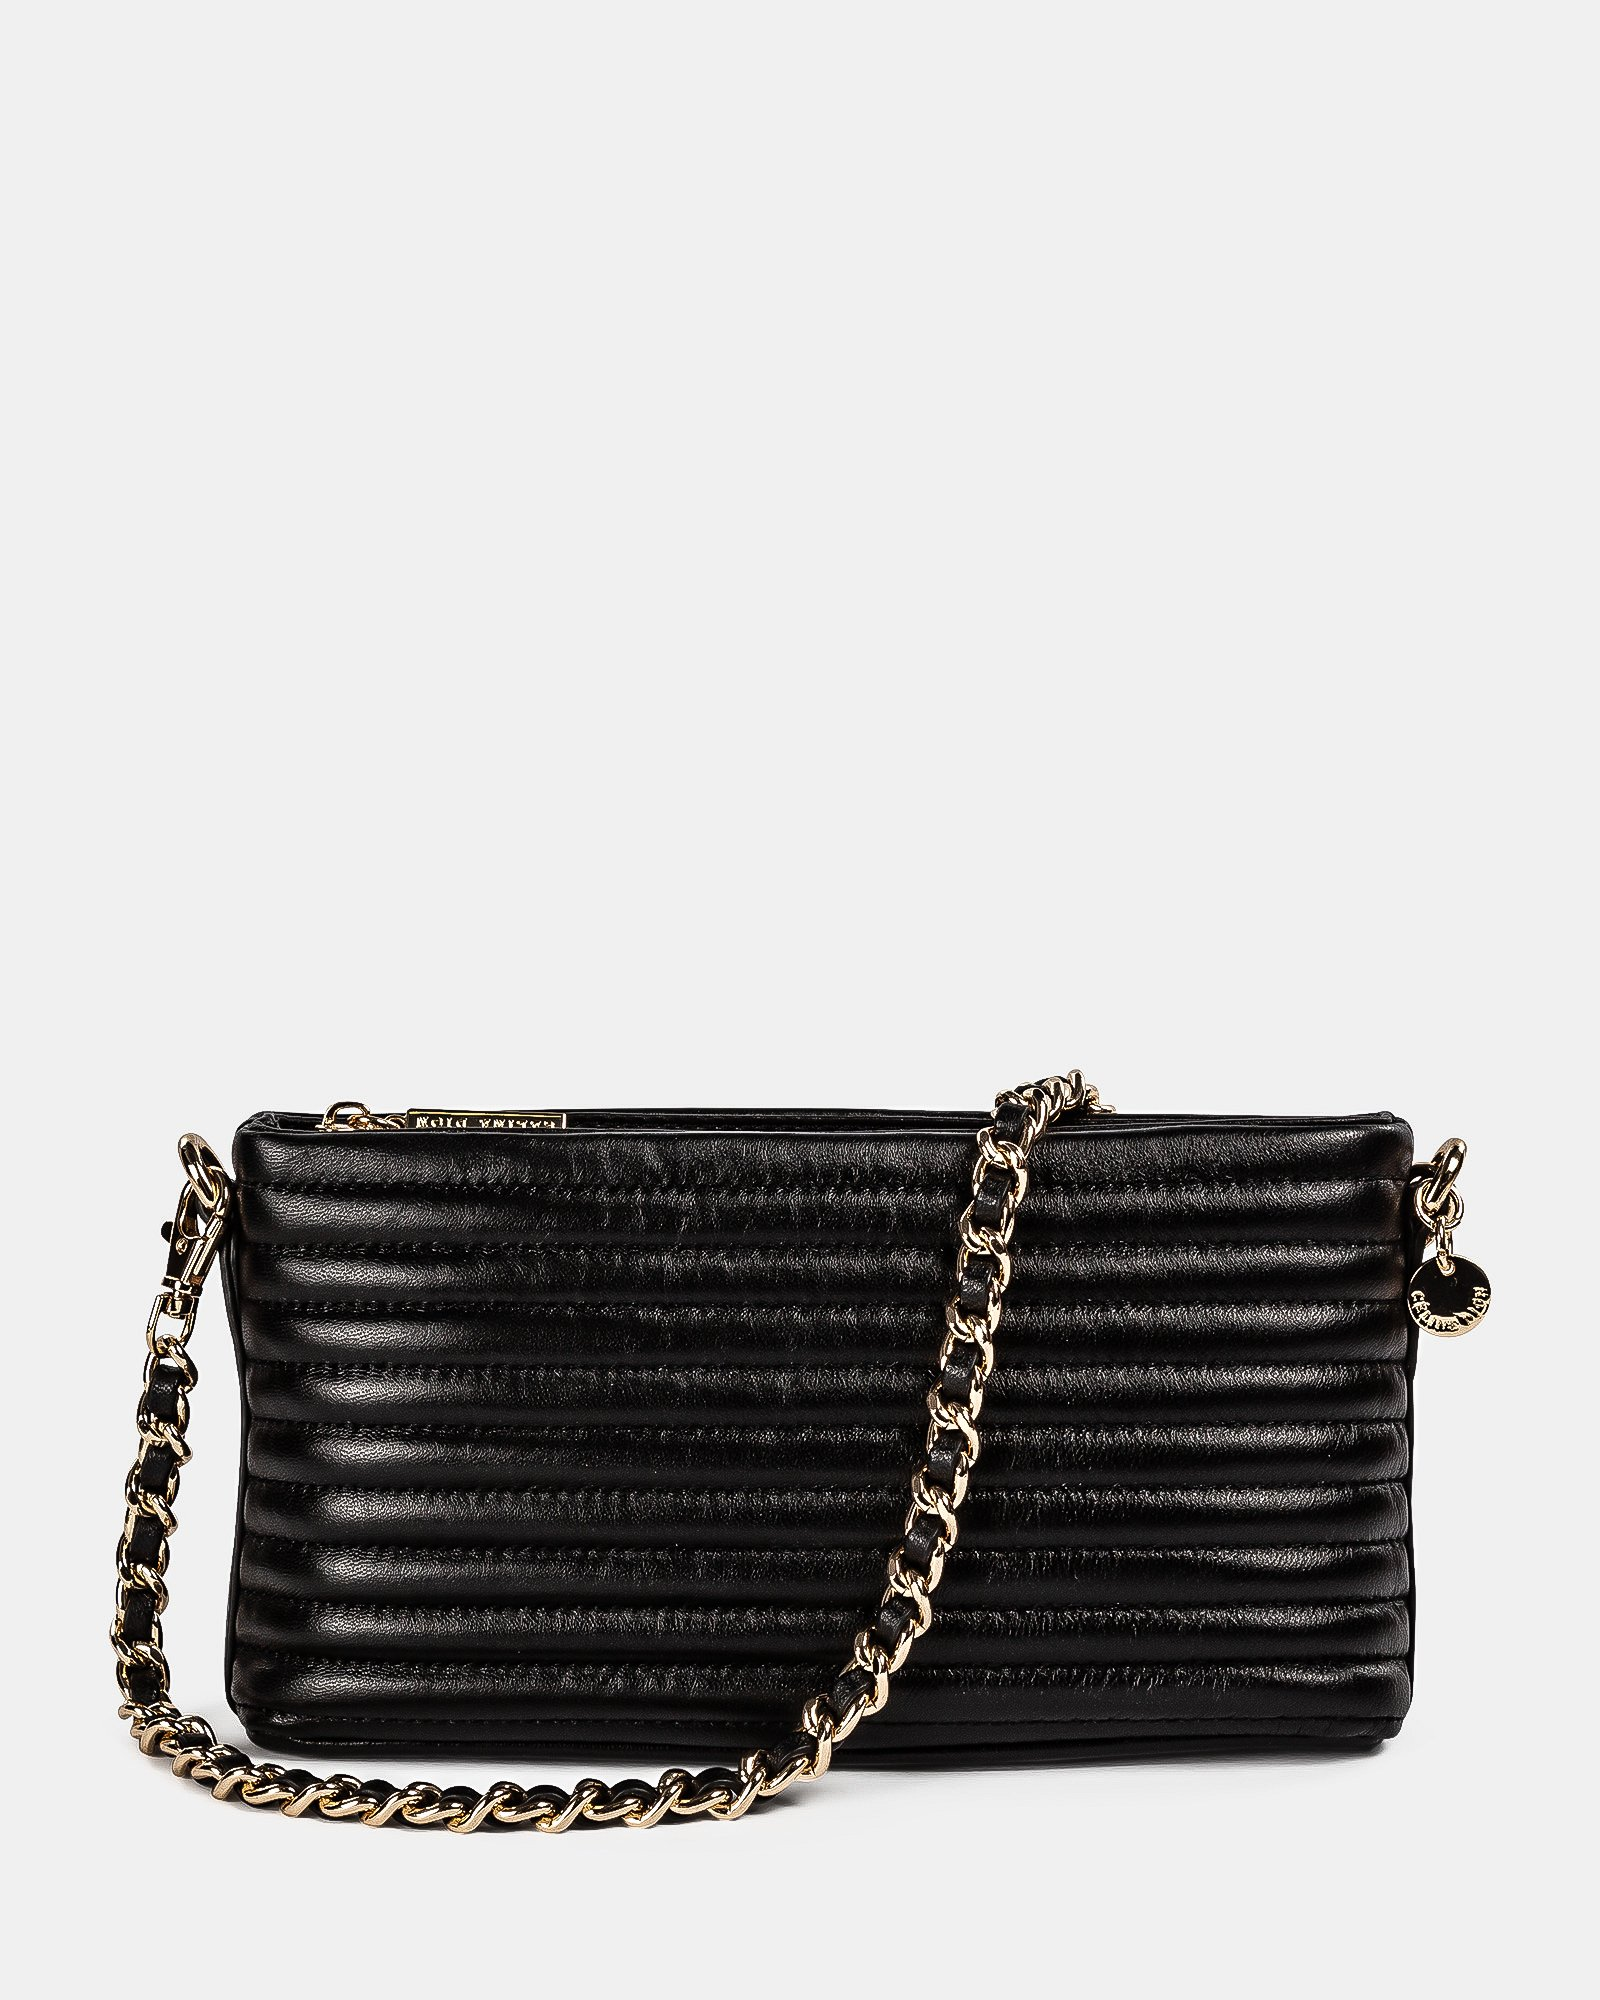 VIBRATO - Quilted leather crossbody with removable strap - BLACK - Céline Dion - Zoom